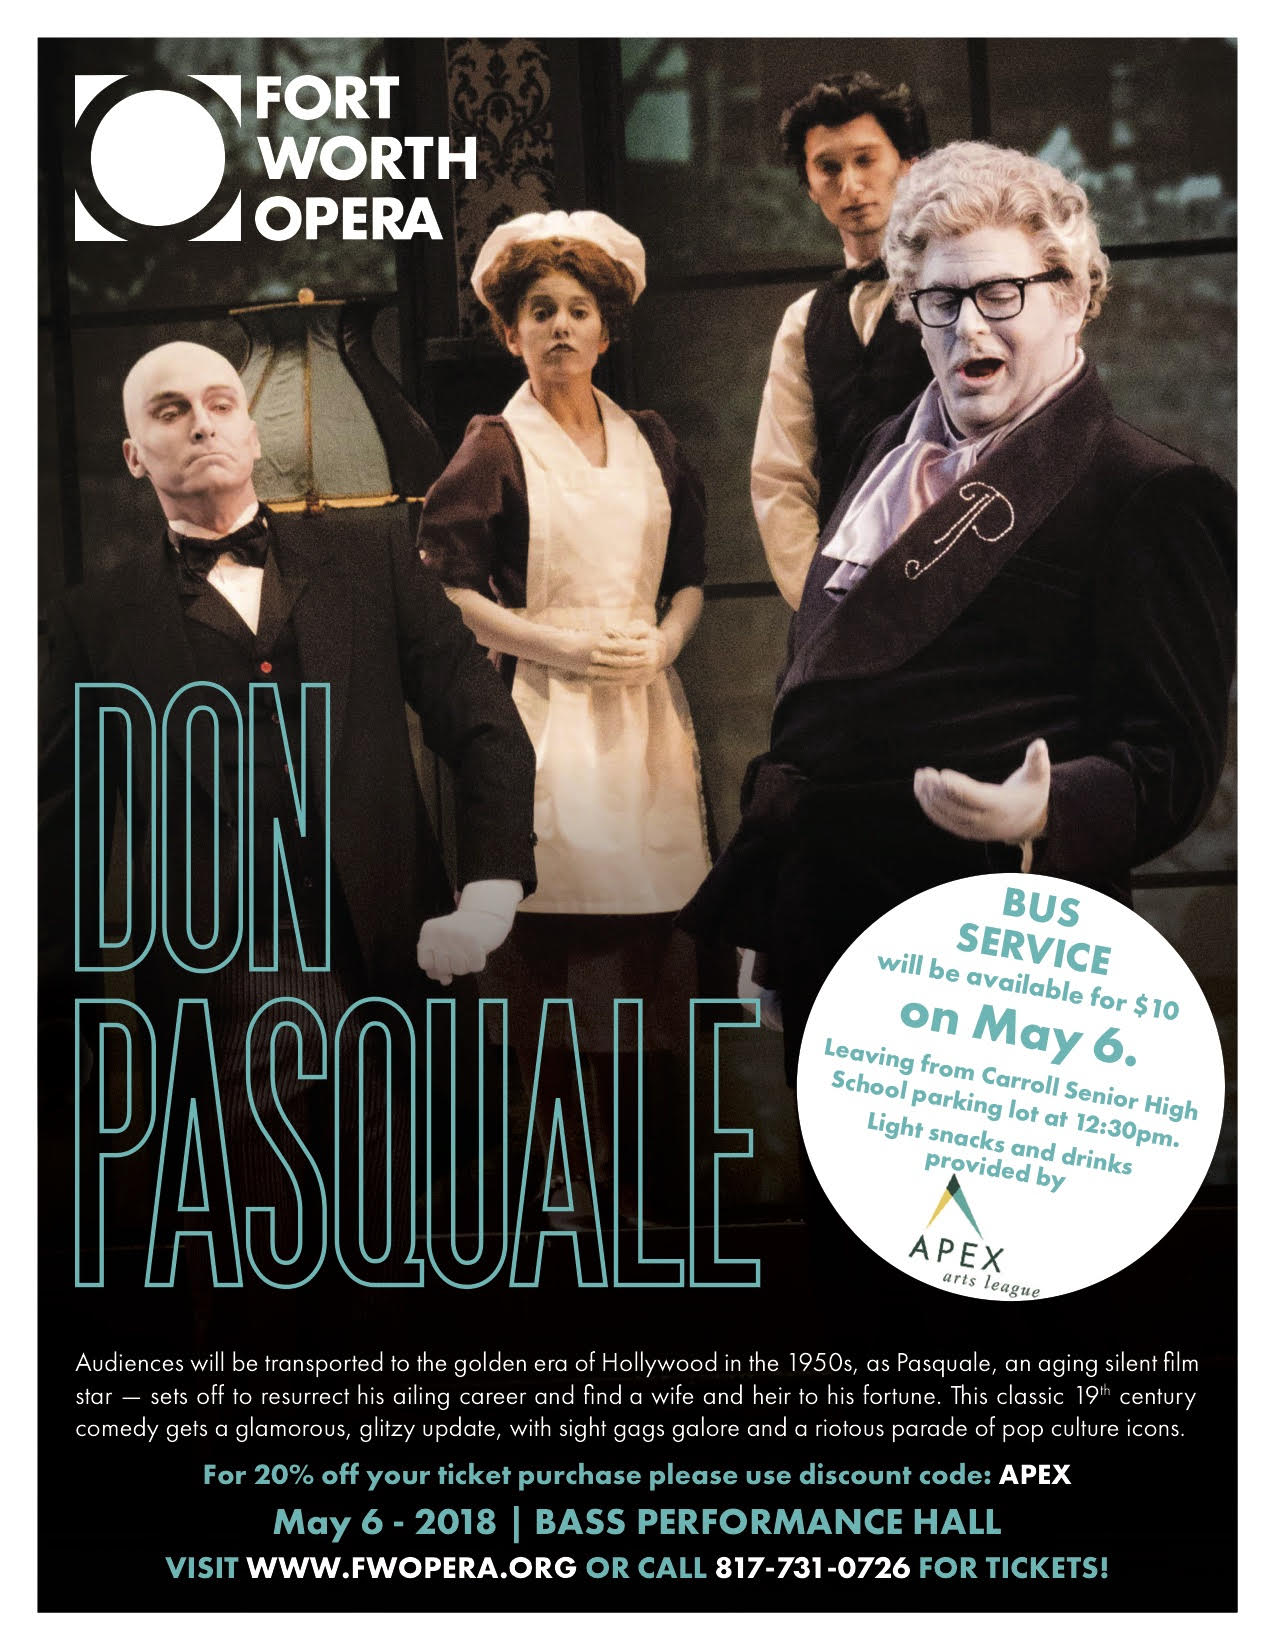 Don Pasquale website.jpg